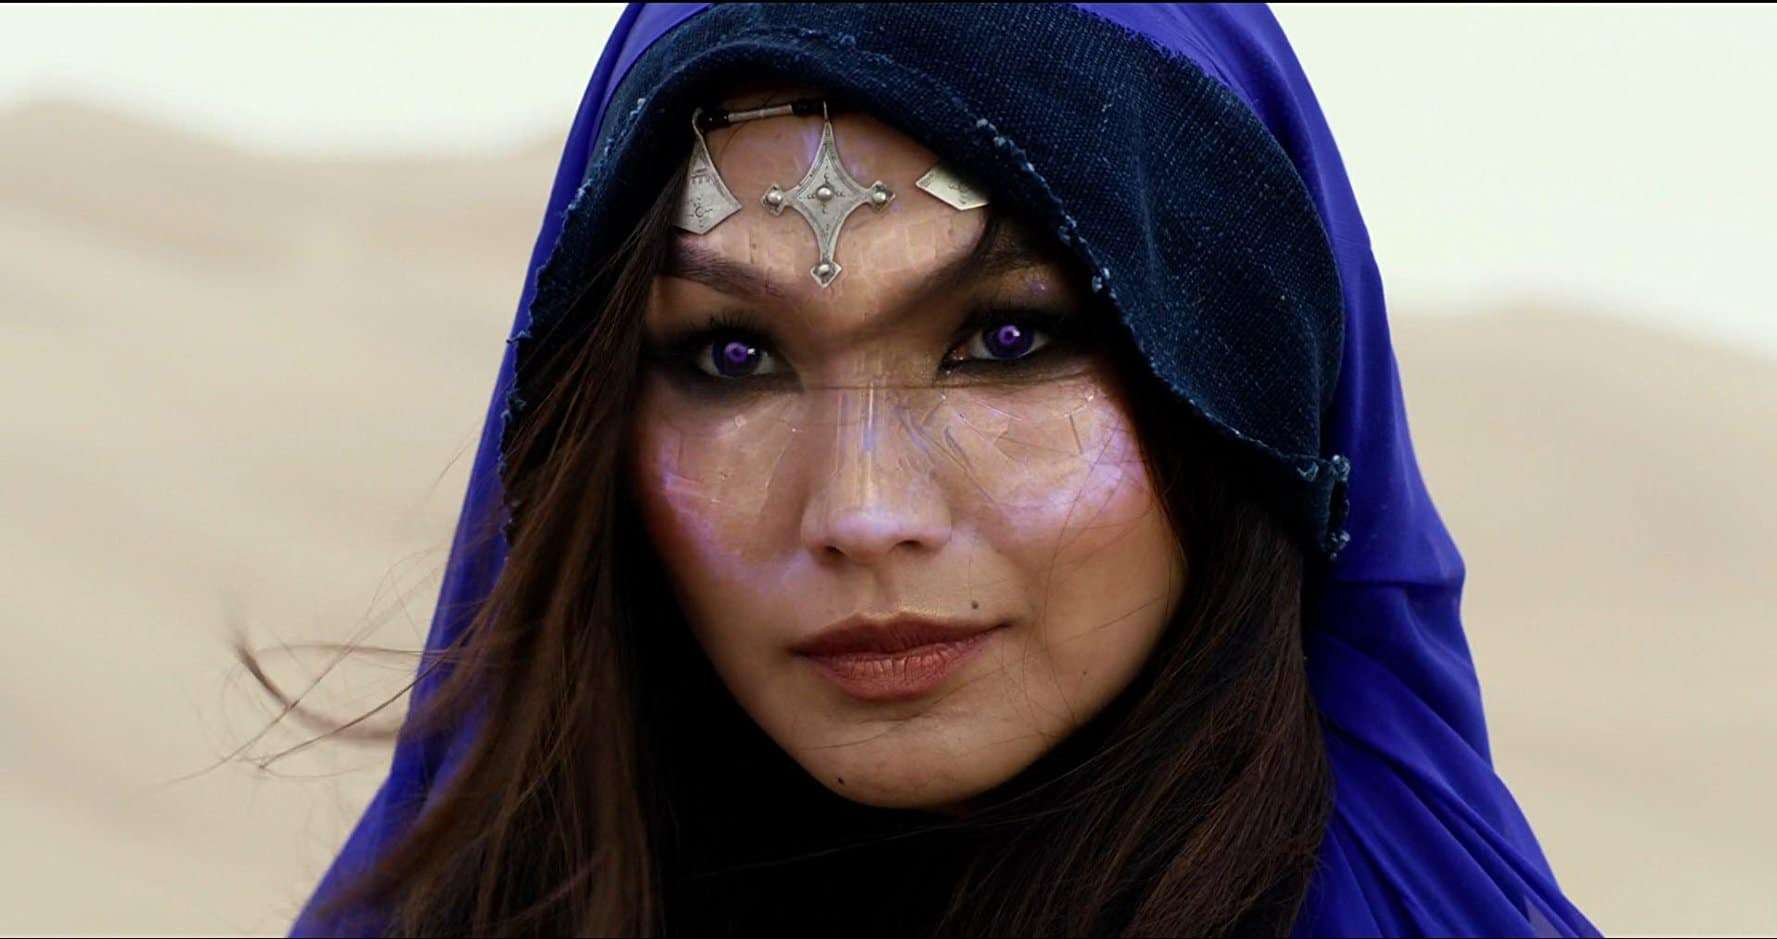 'Captain Marvel' Casts Gemma Chan as Minn-Erva